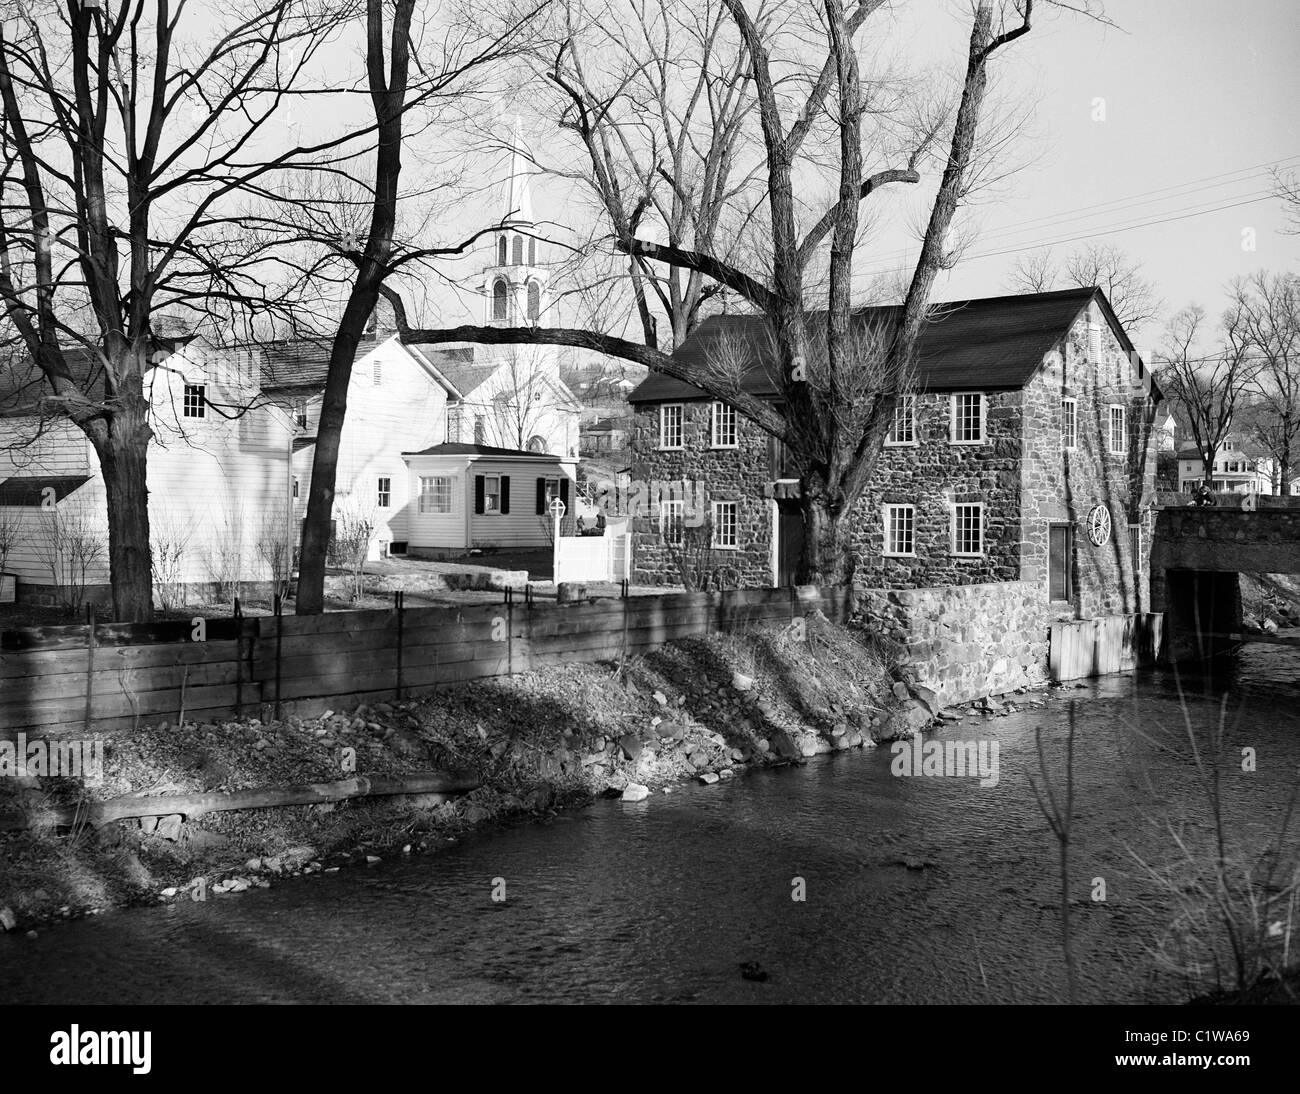 USA, New Jersey, Gladstone, Townscape - Stock Image